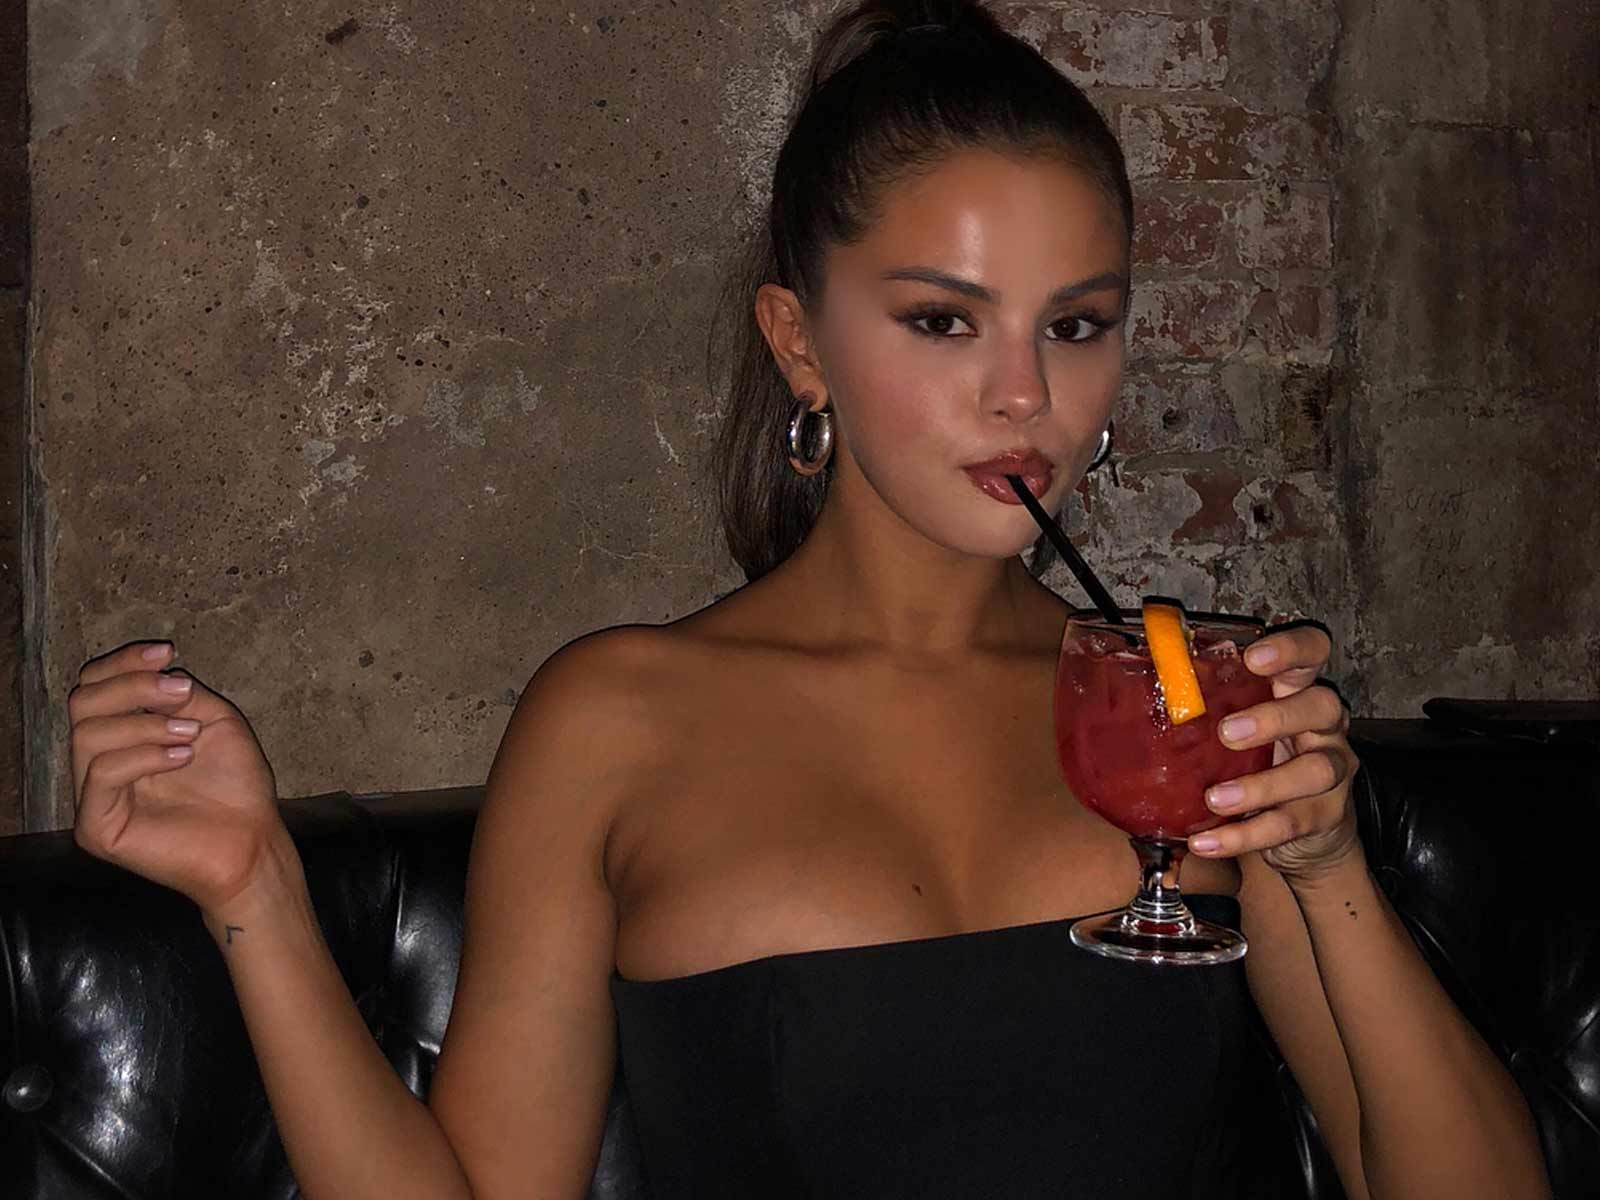 Selena Gomez Unleashes a Cavalcade of Cleavage on Instagram [PIC]